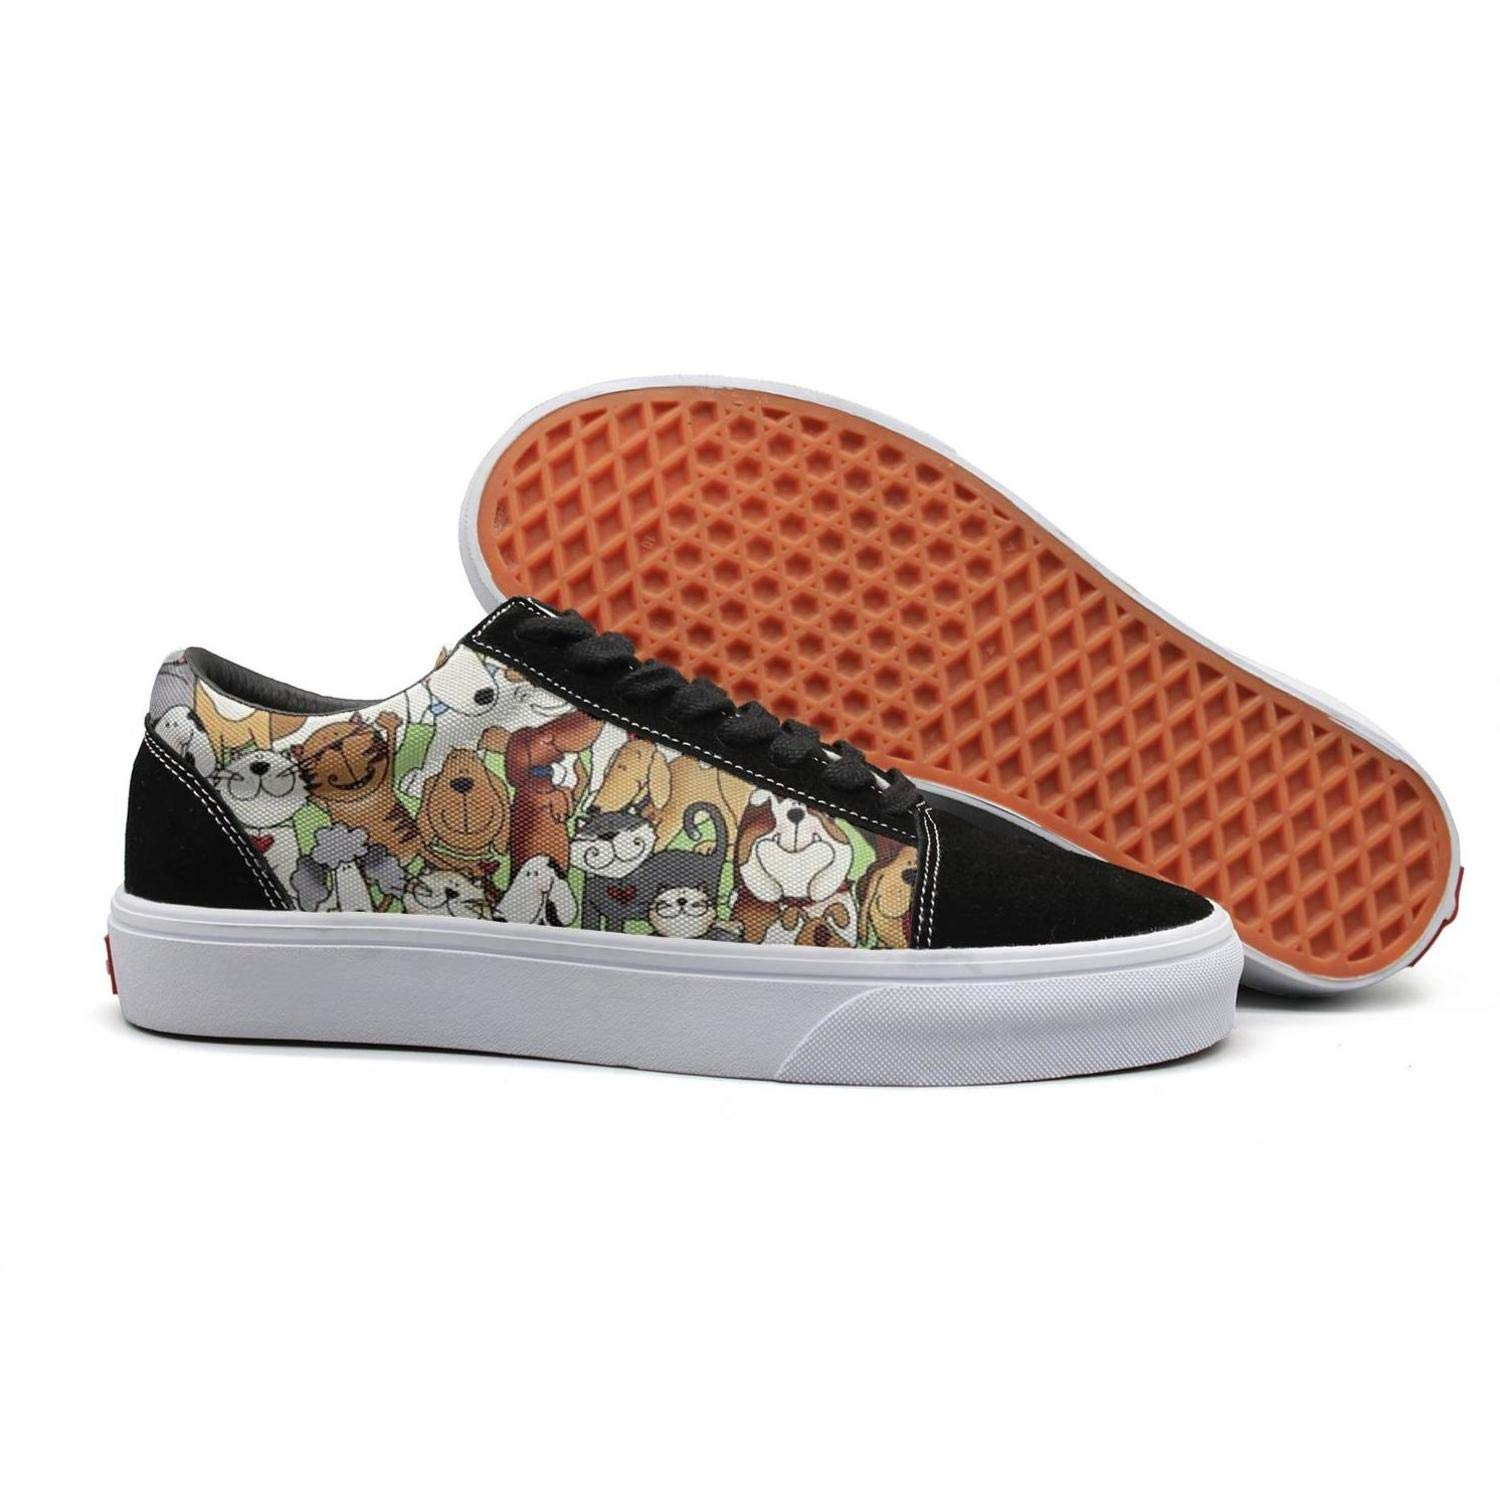 Pheomg Womens All Kinds of Dogs Spring Casual Slip-on Canvas Shoes Cute Casual Shoes Sneakers